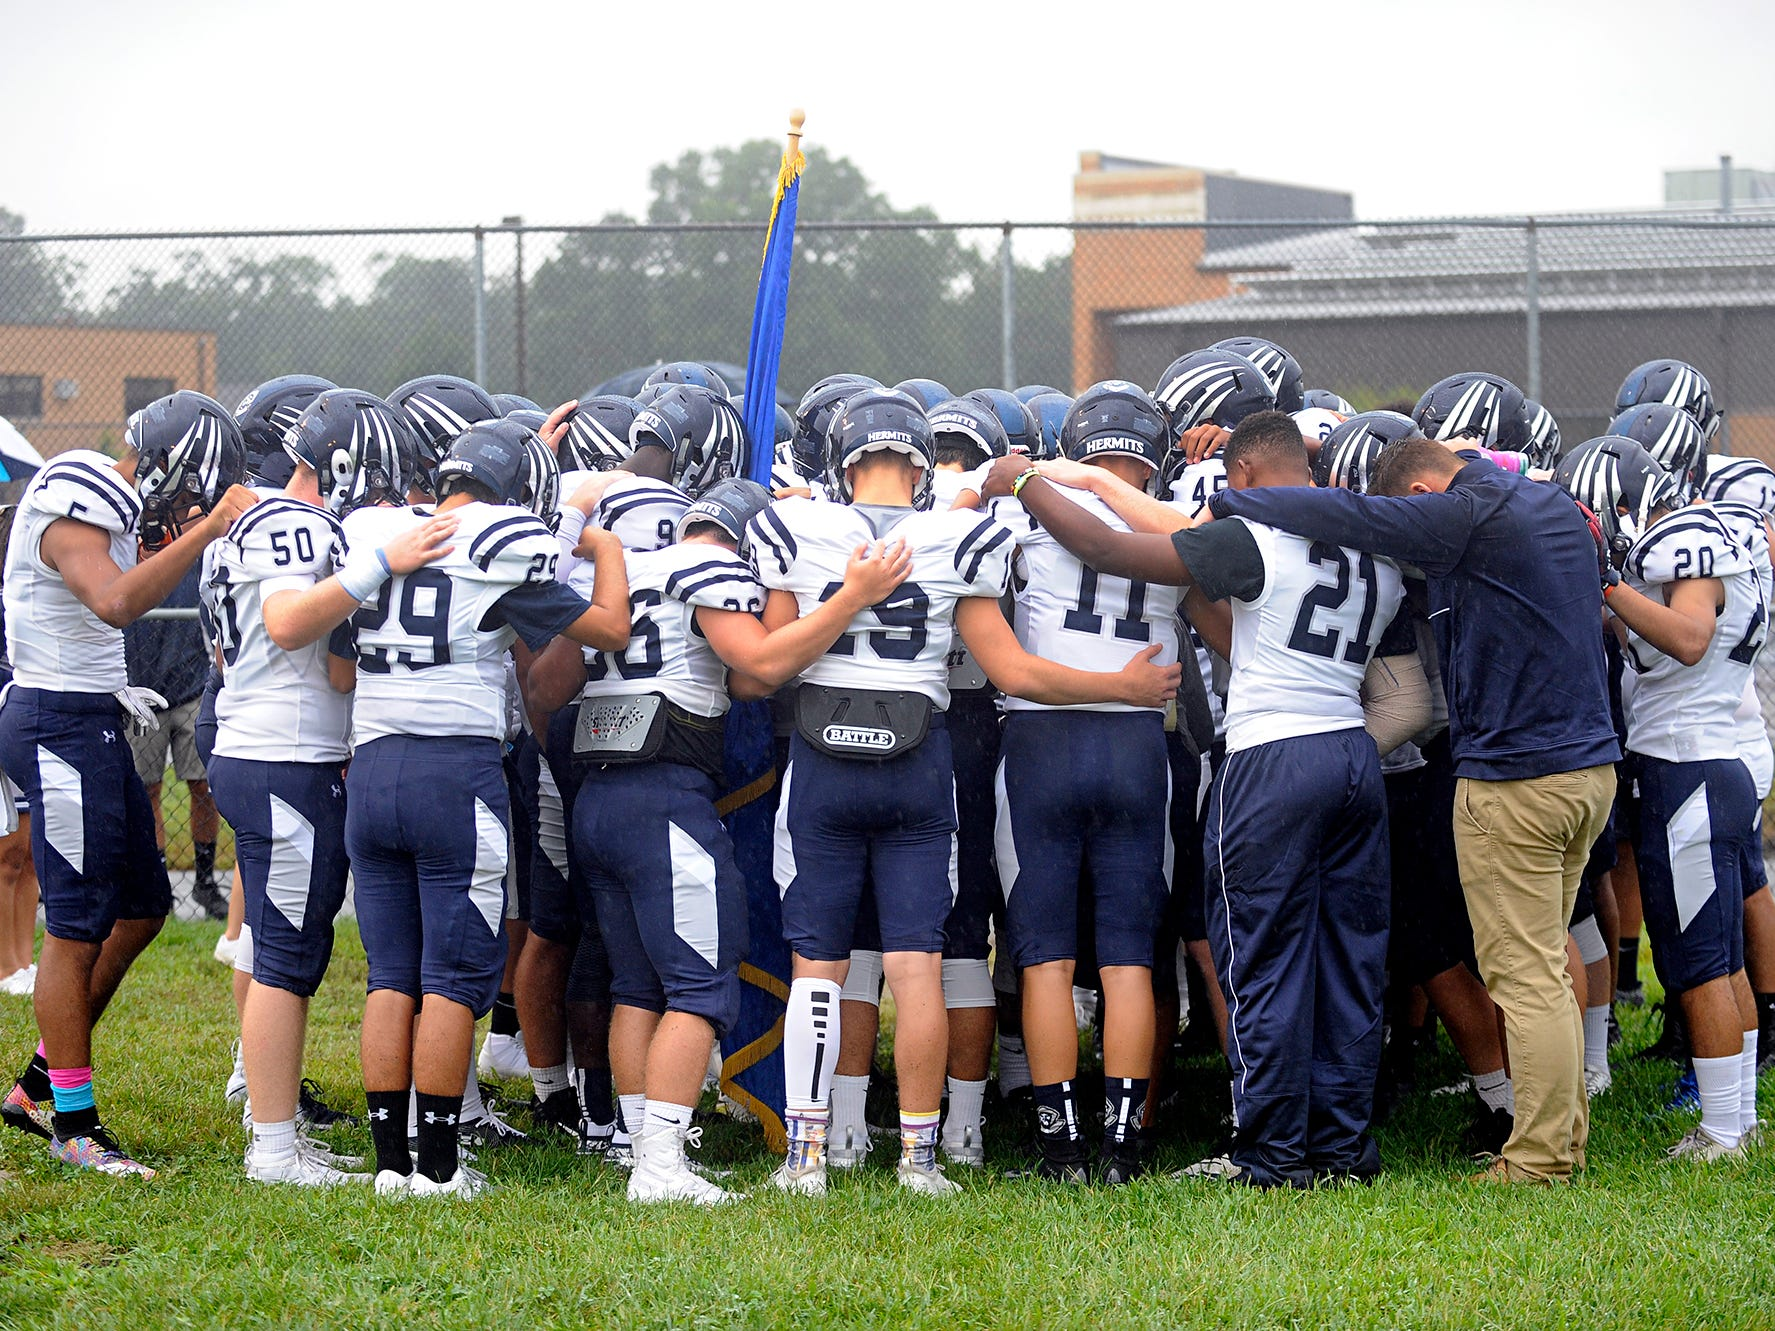 St. Augustine dropped to 1-2 for the season after being defeated at home by St. Joseph. The Wildcats rolled past the Hermits 30-8 on Friday, September 14.